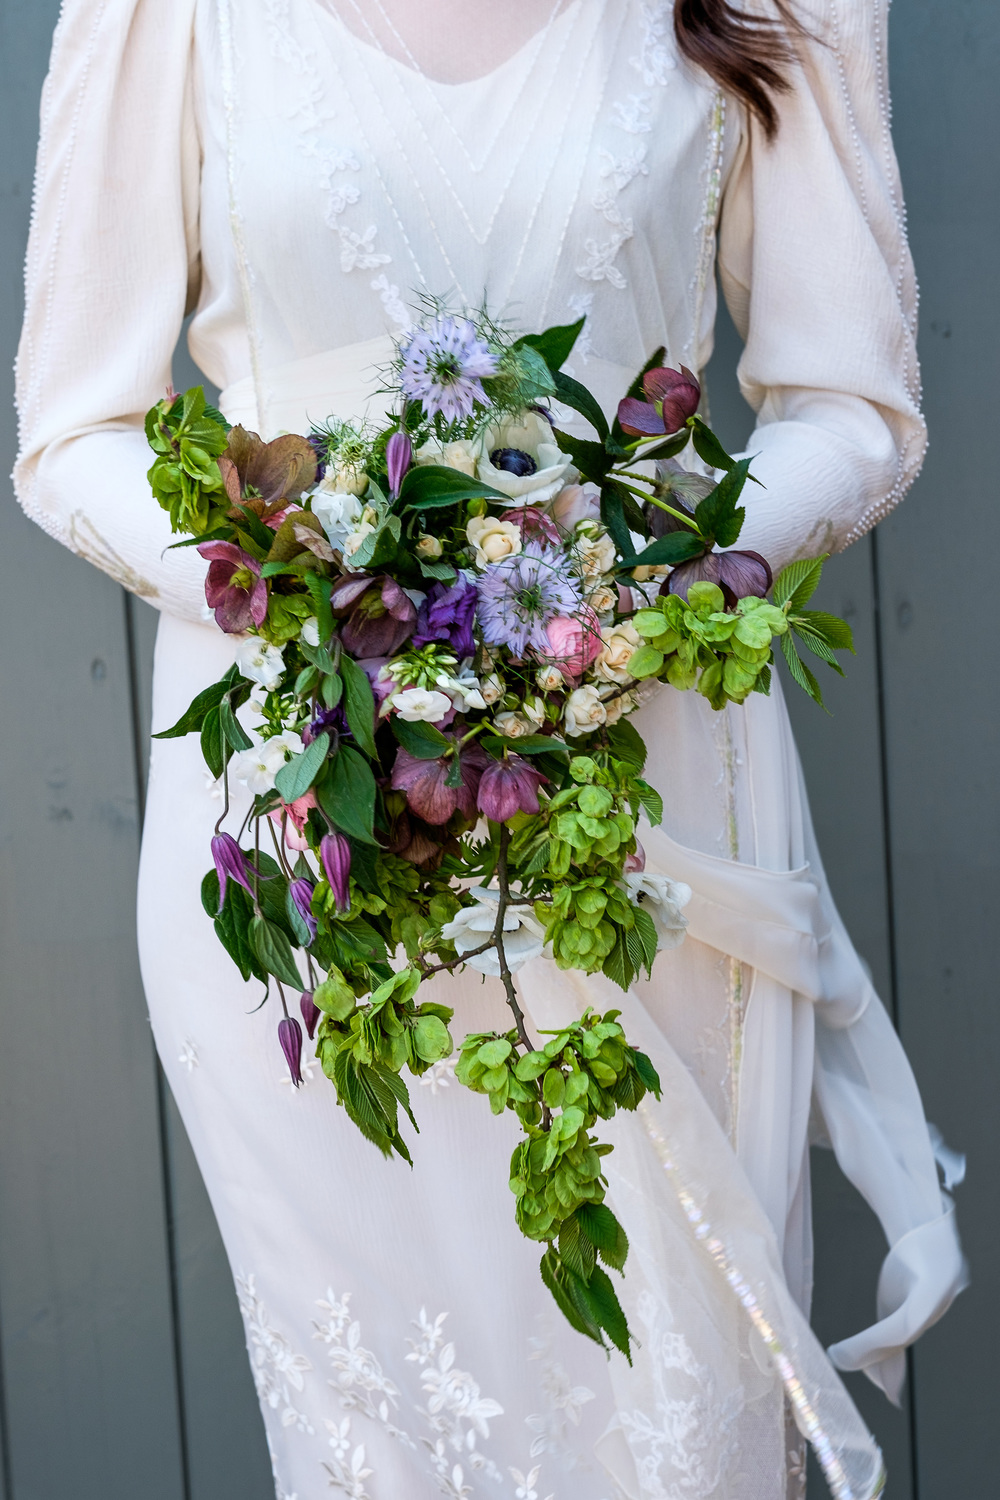 in-front-of-the-barn-doors, cow shed crail, fife wedding venue, image - suzanne black photography